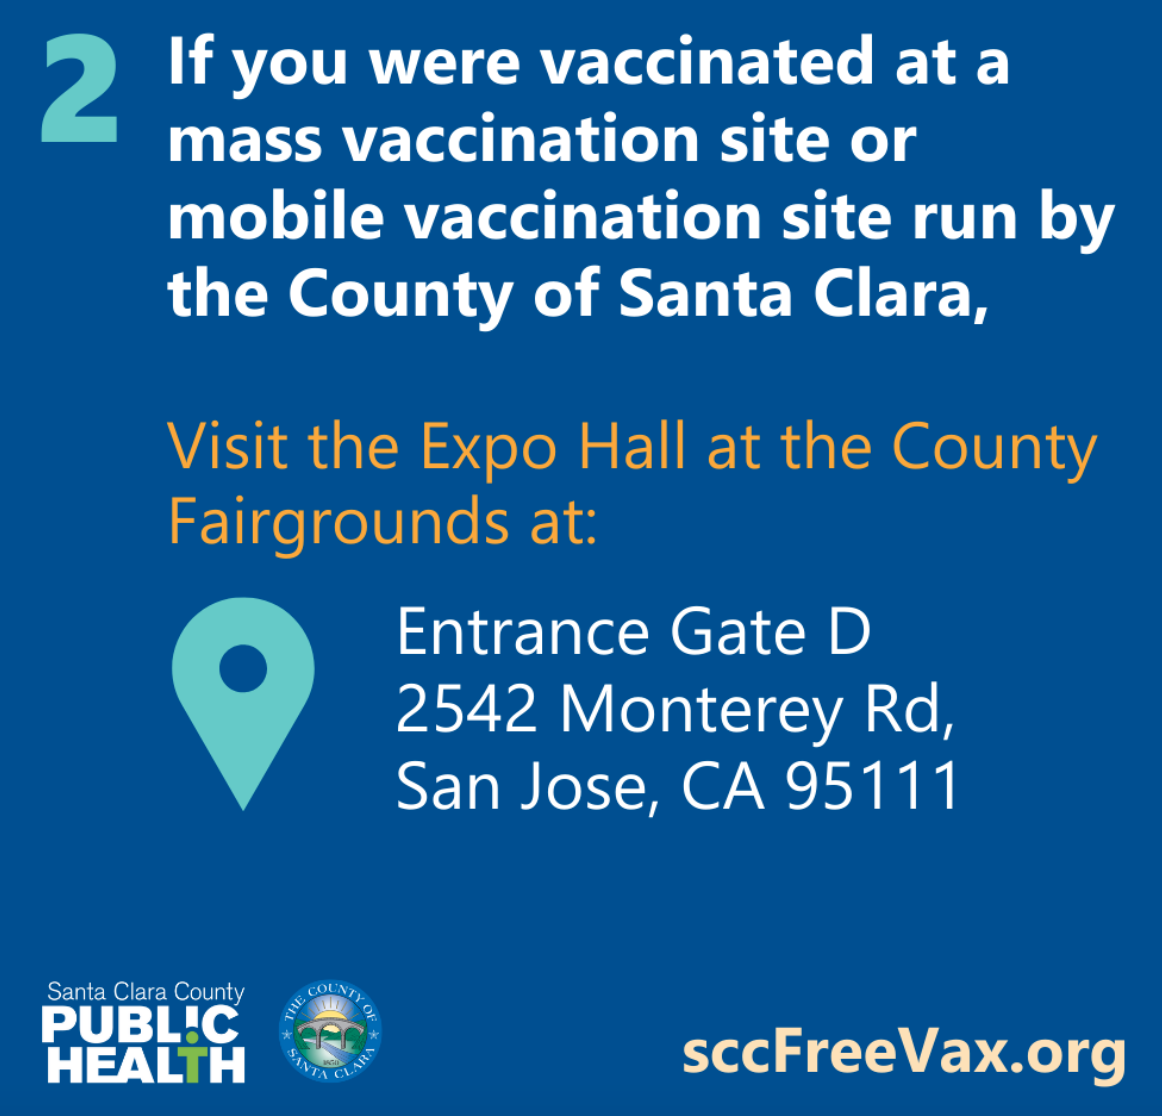 visit the vaccination site (if it is still open)